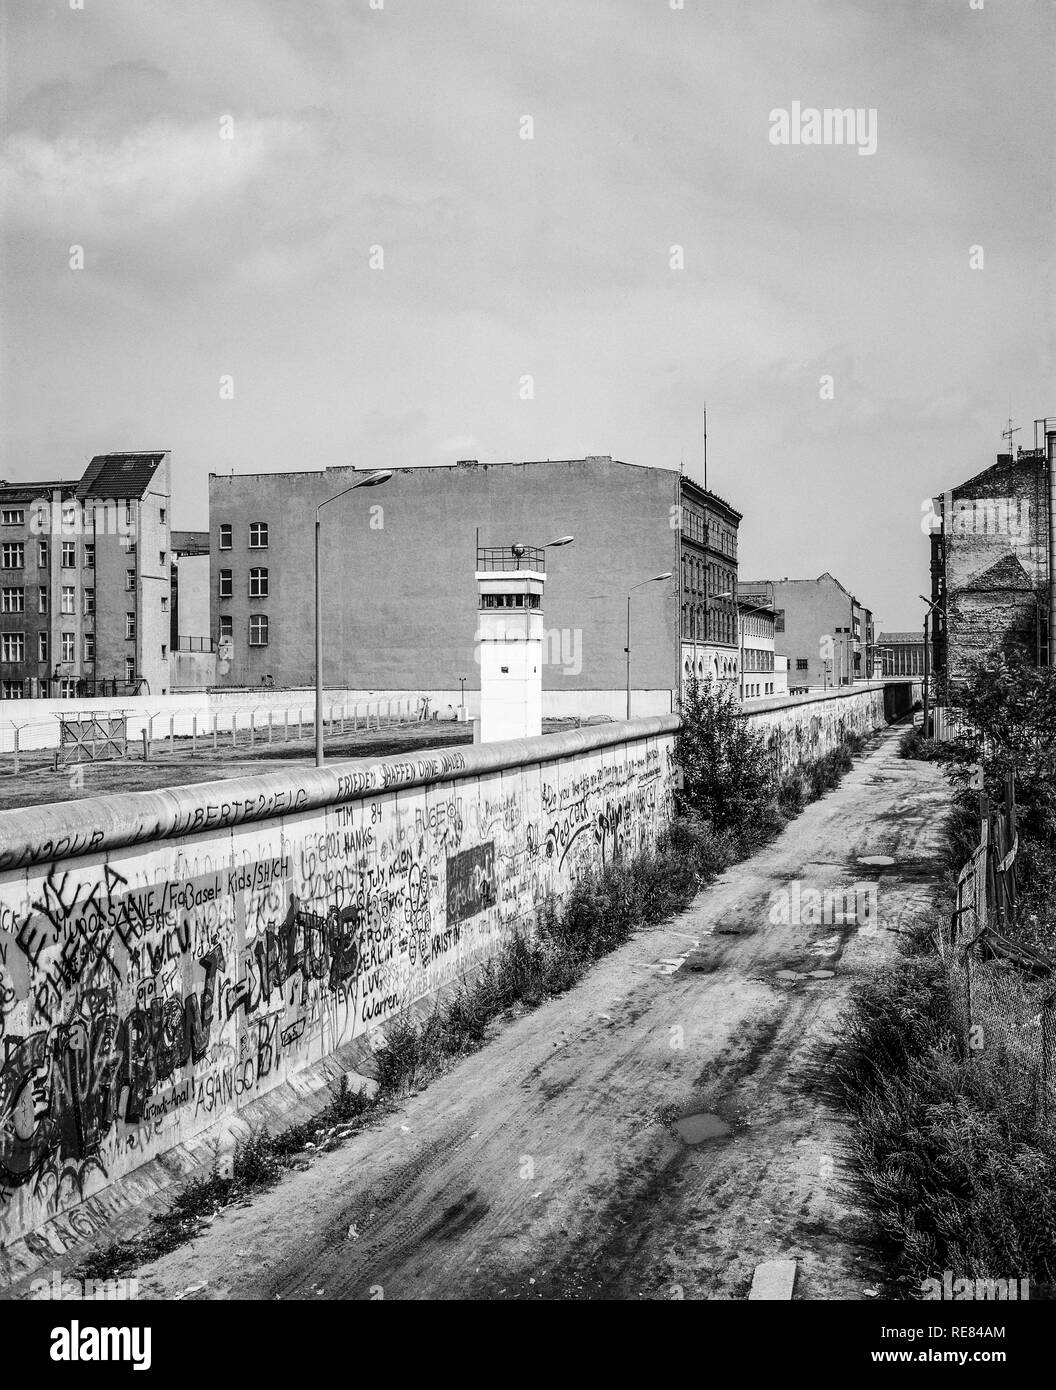 August 1986, graffitis on the Berlin Wall, East Berlin watchtower, death strip, Zimmerstrasse street, Kreuzberg, West Berlin side, Germany, Europe, - Stock Image